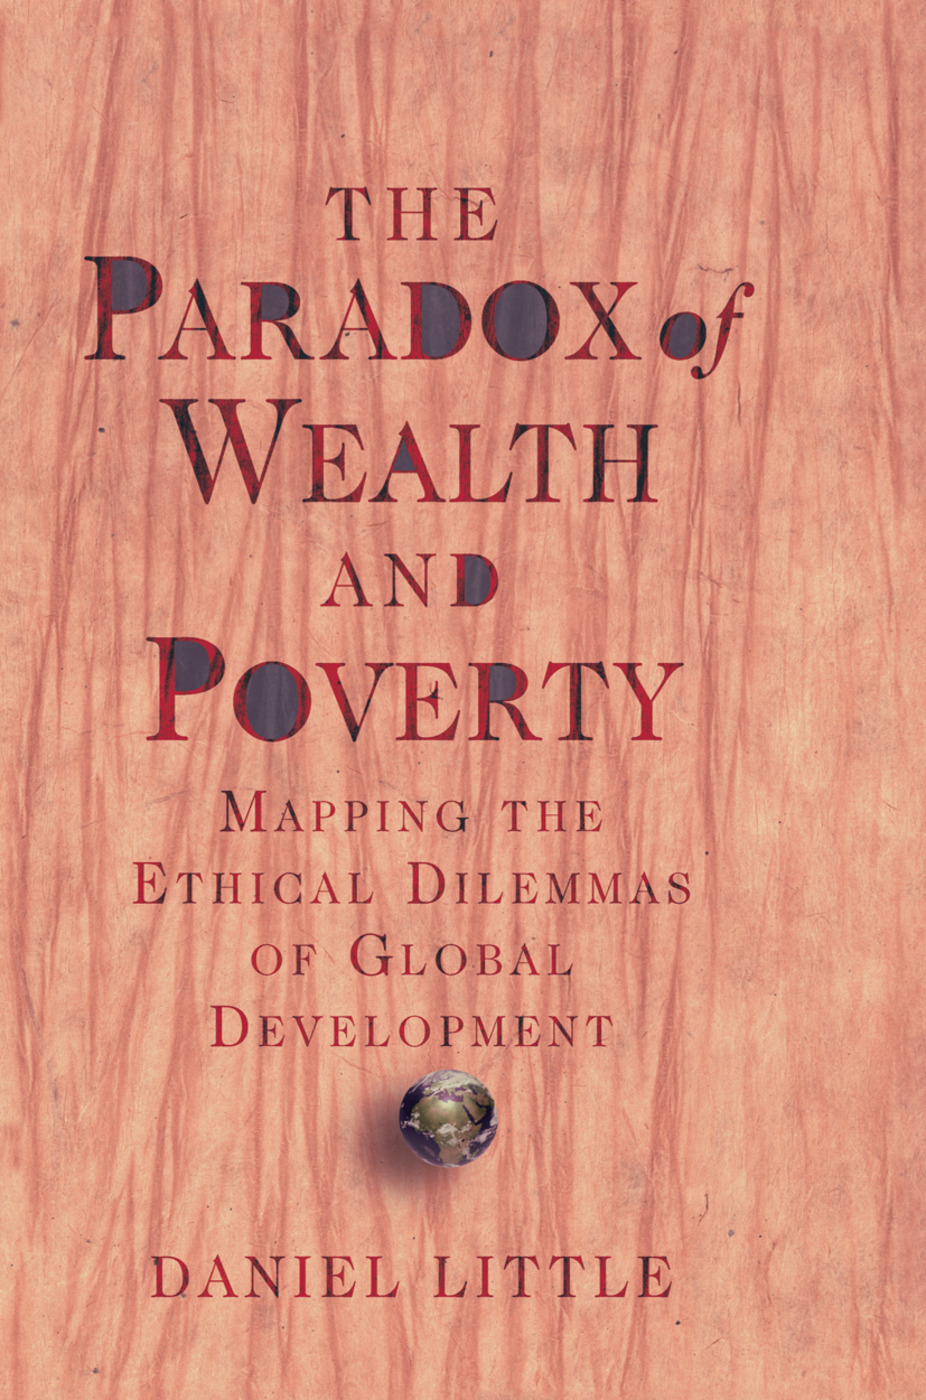 The Paradox Of Wealth And Poverty: Mapping The Ethical Dilemmas Of Global Development book cover